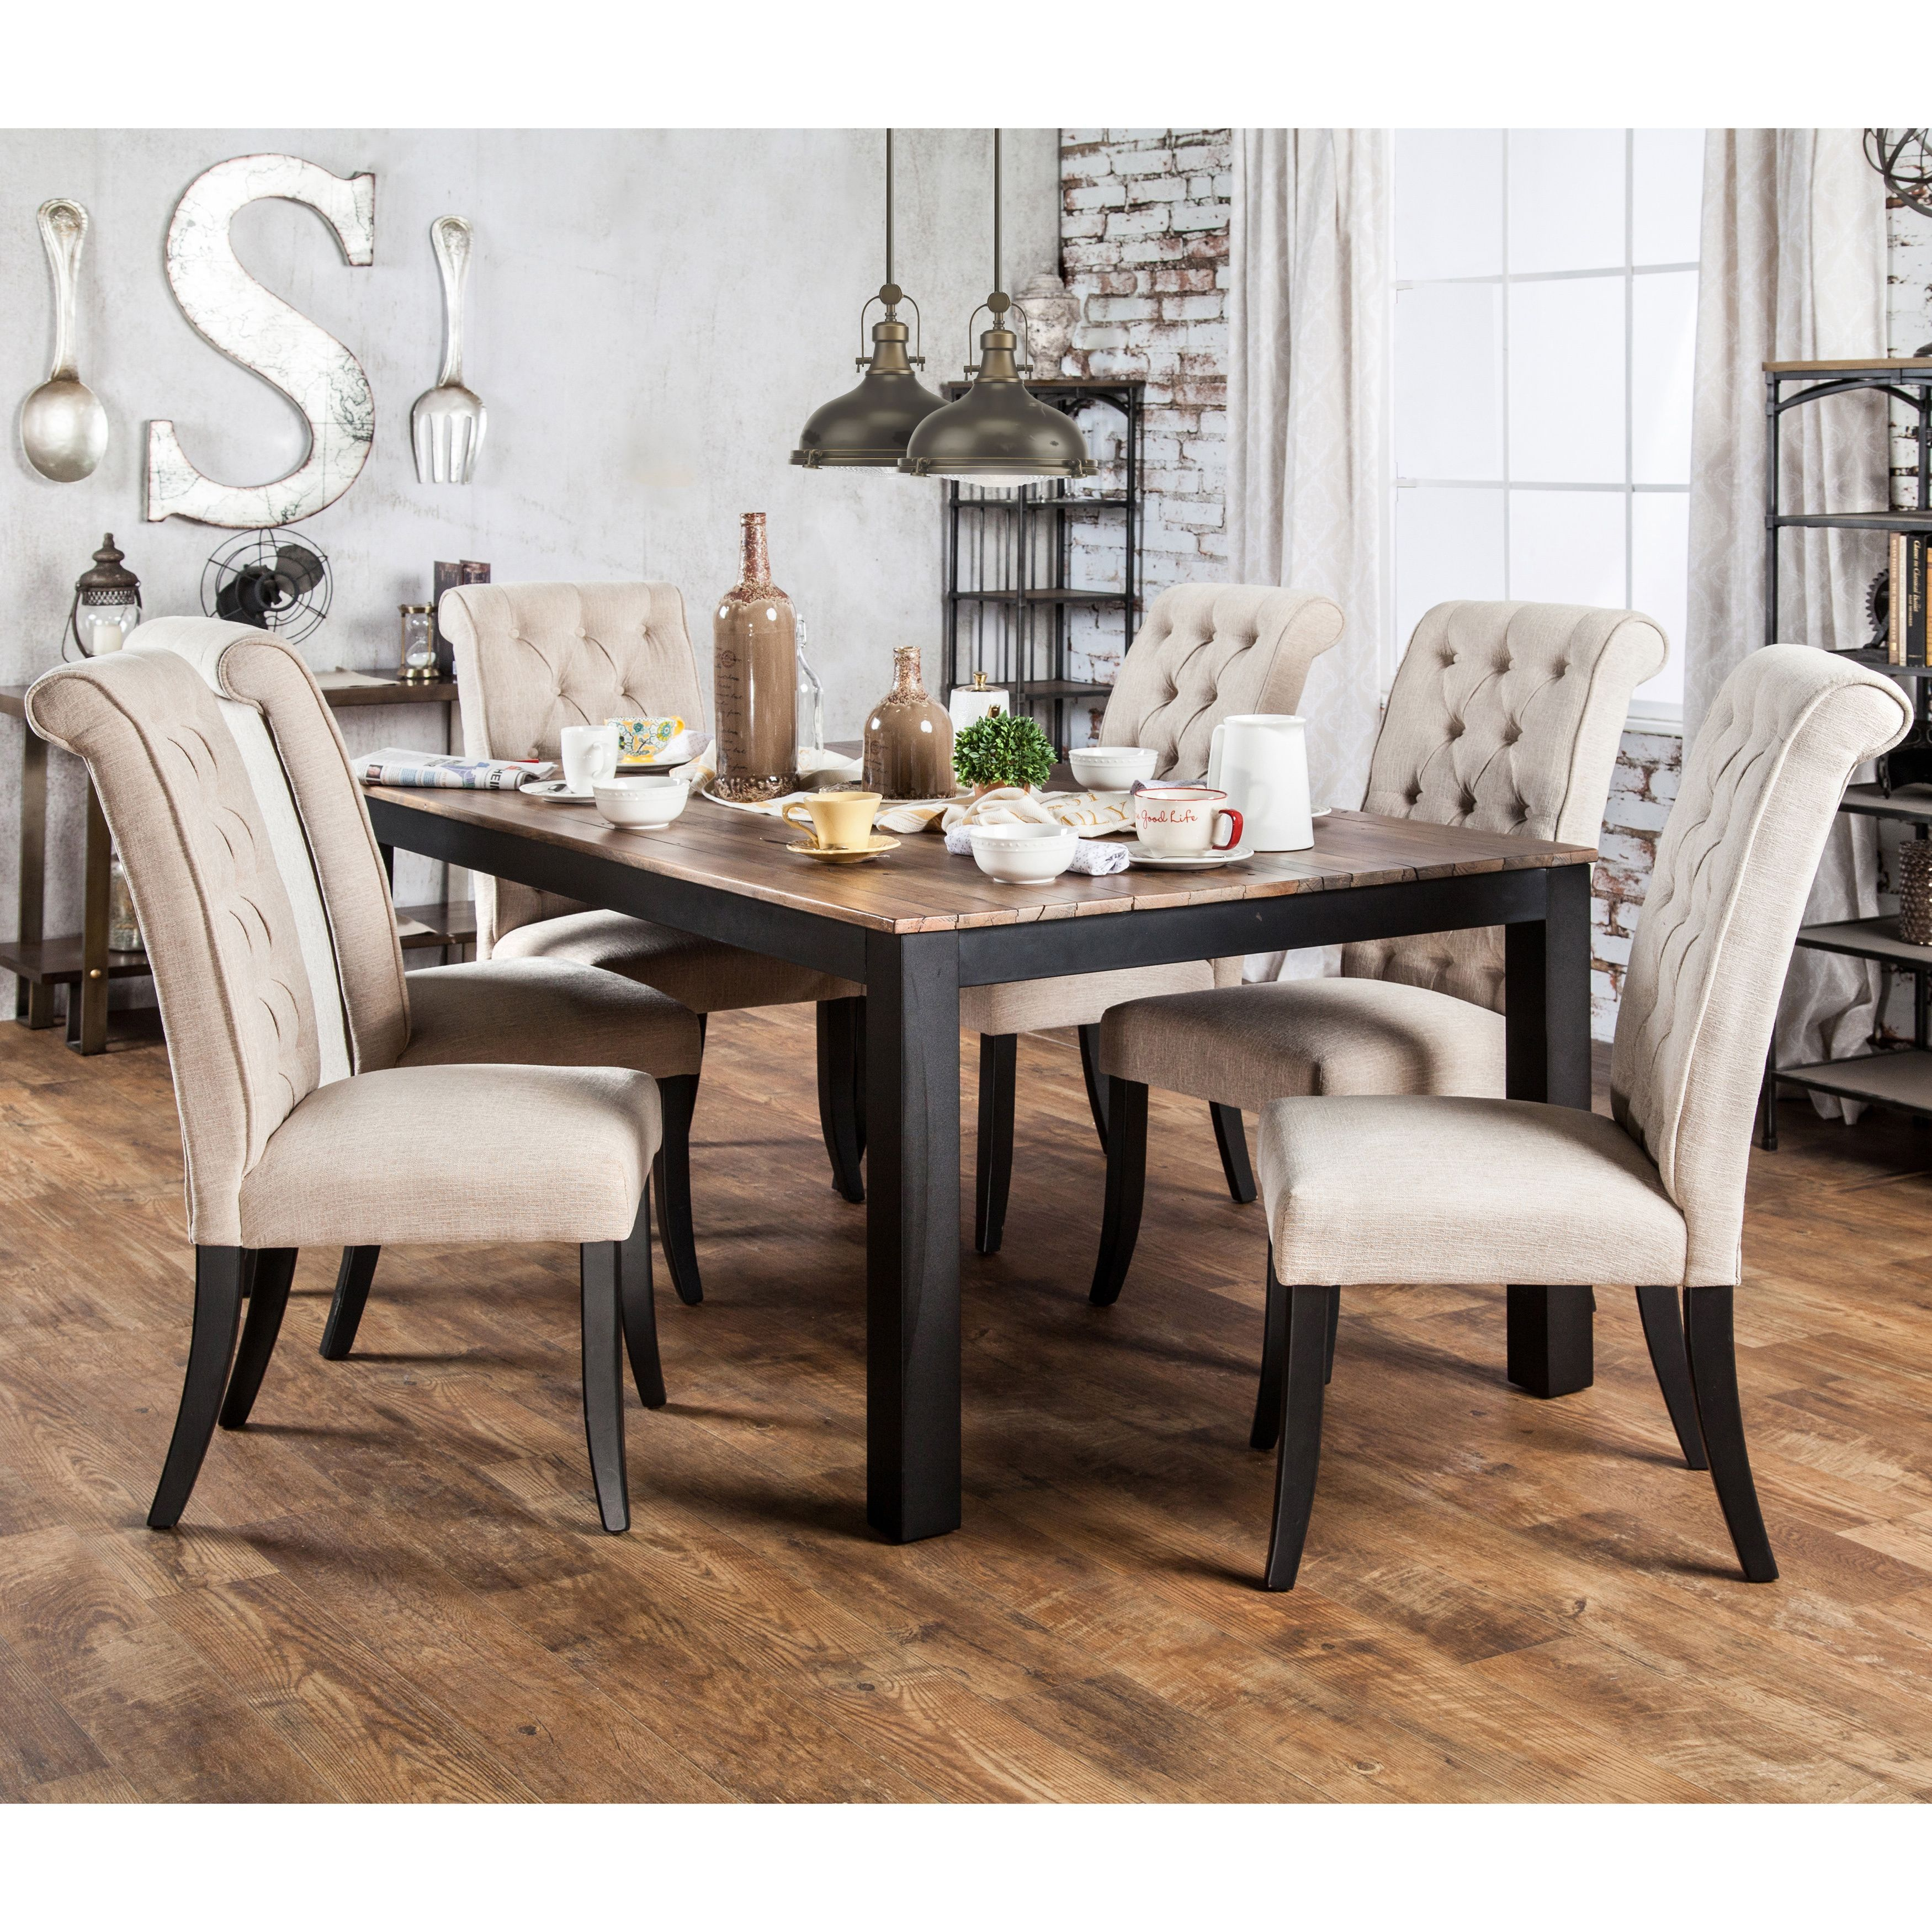 Gracewood Hollow Tabios Rustic Two Tone Dining Table